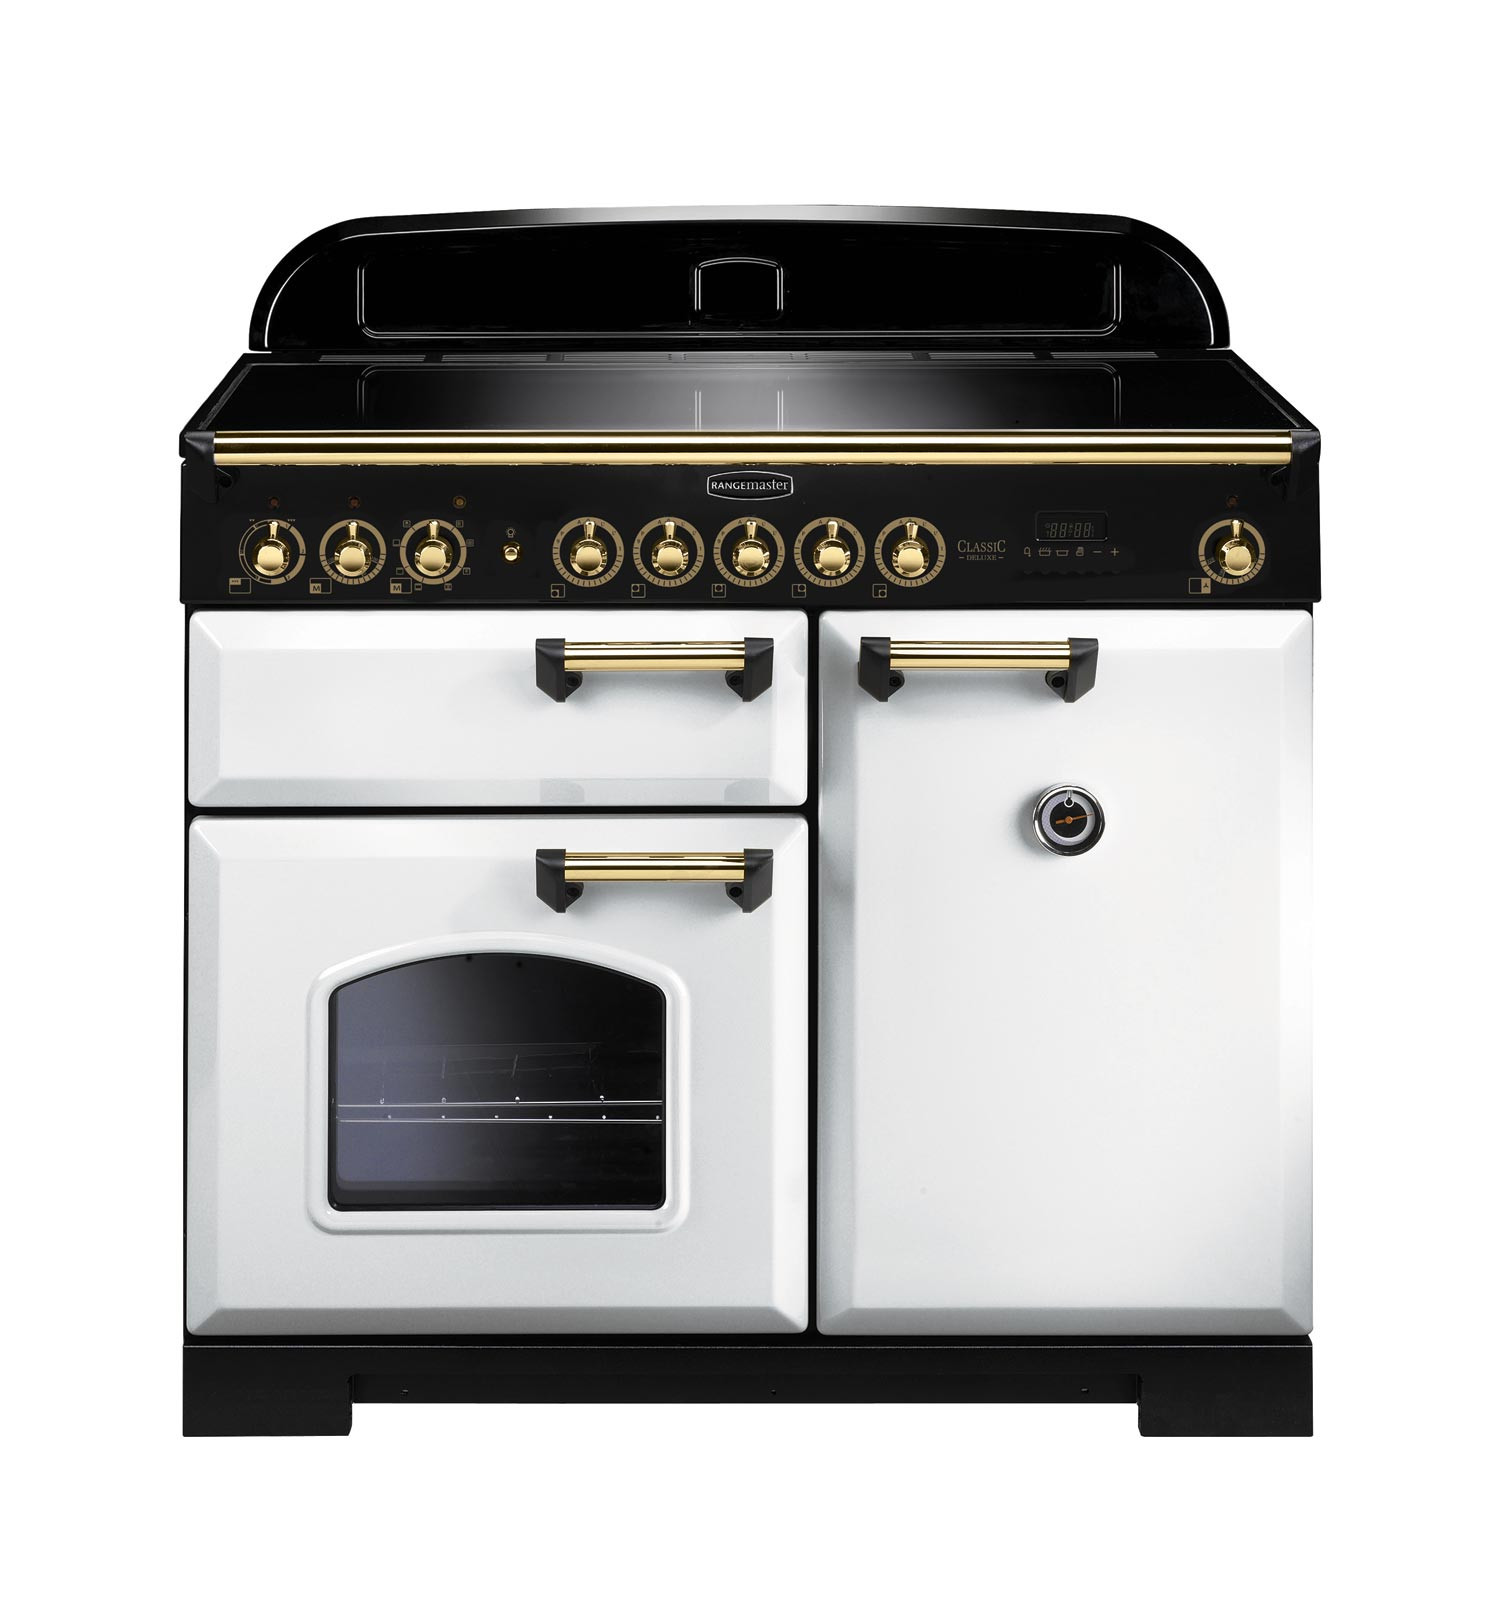 Rangemaster Classic Deluxe 100 Induction White/Brass Trim Range Cooker CDL100EIWH/B 114040